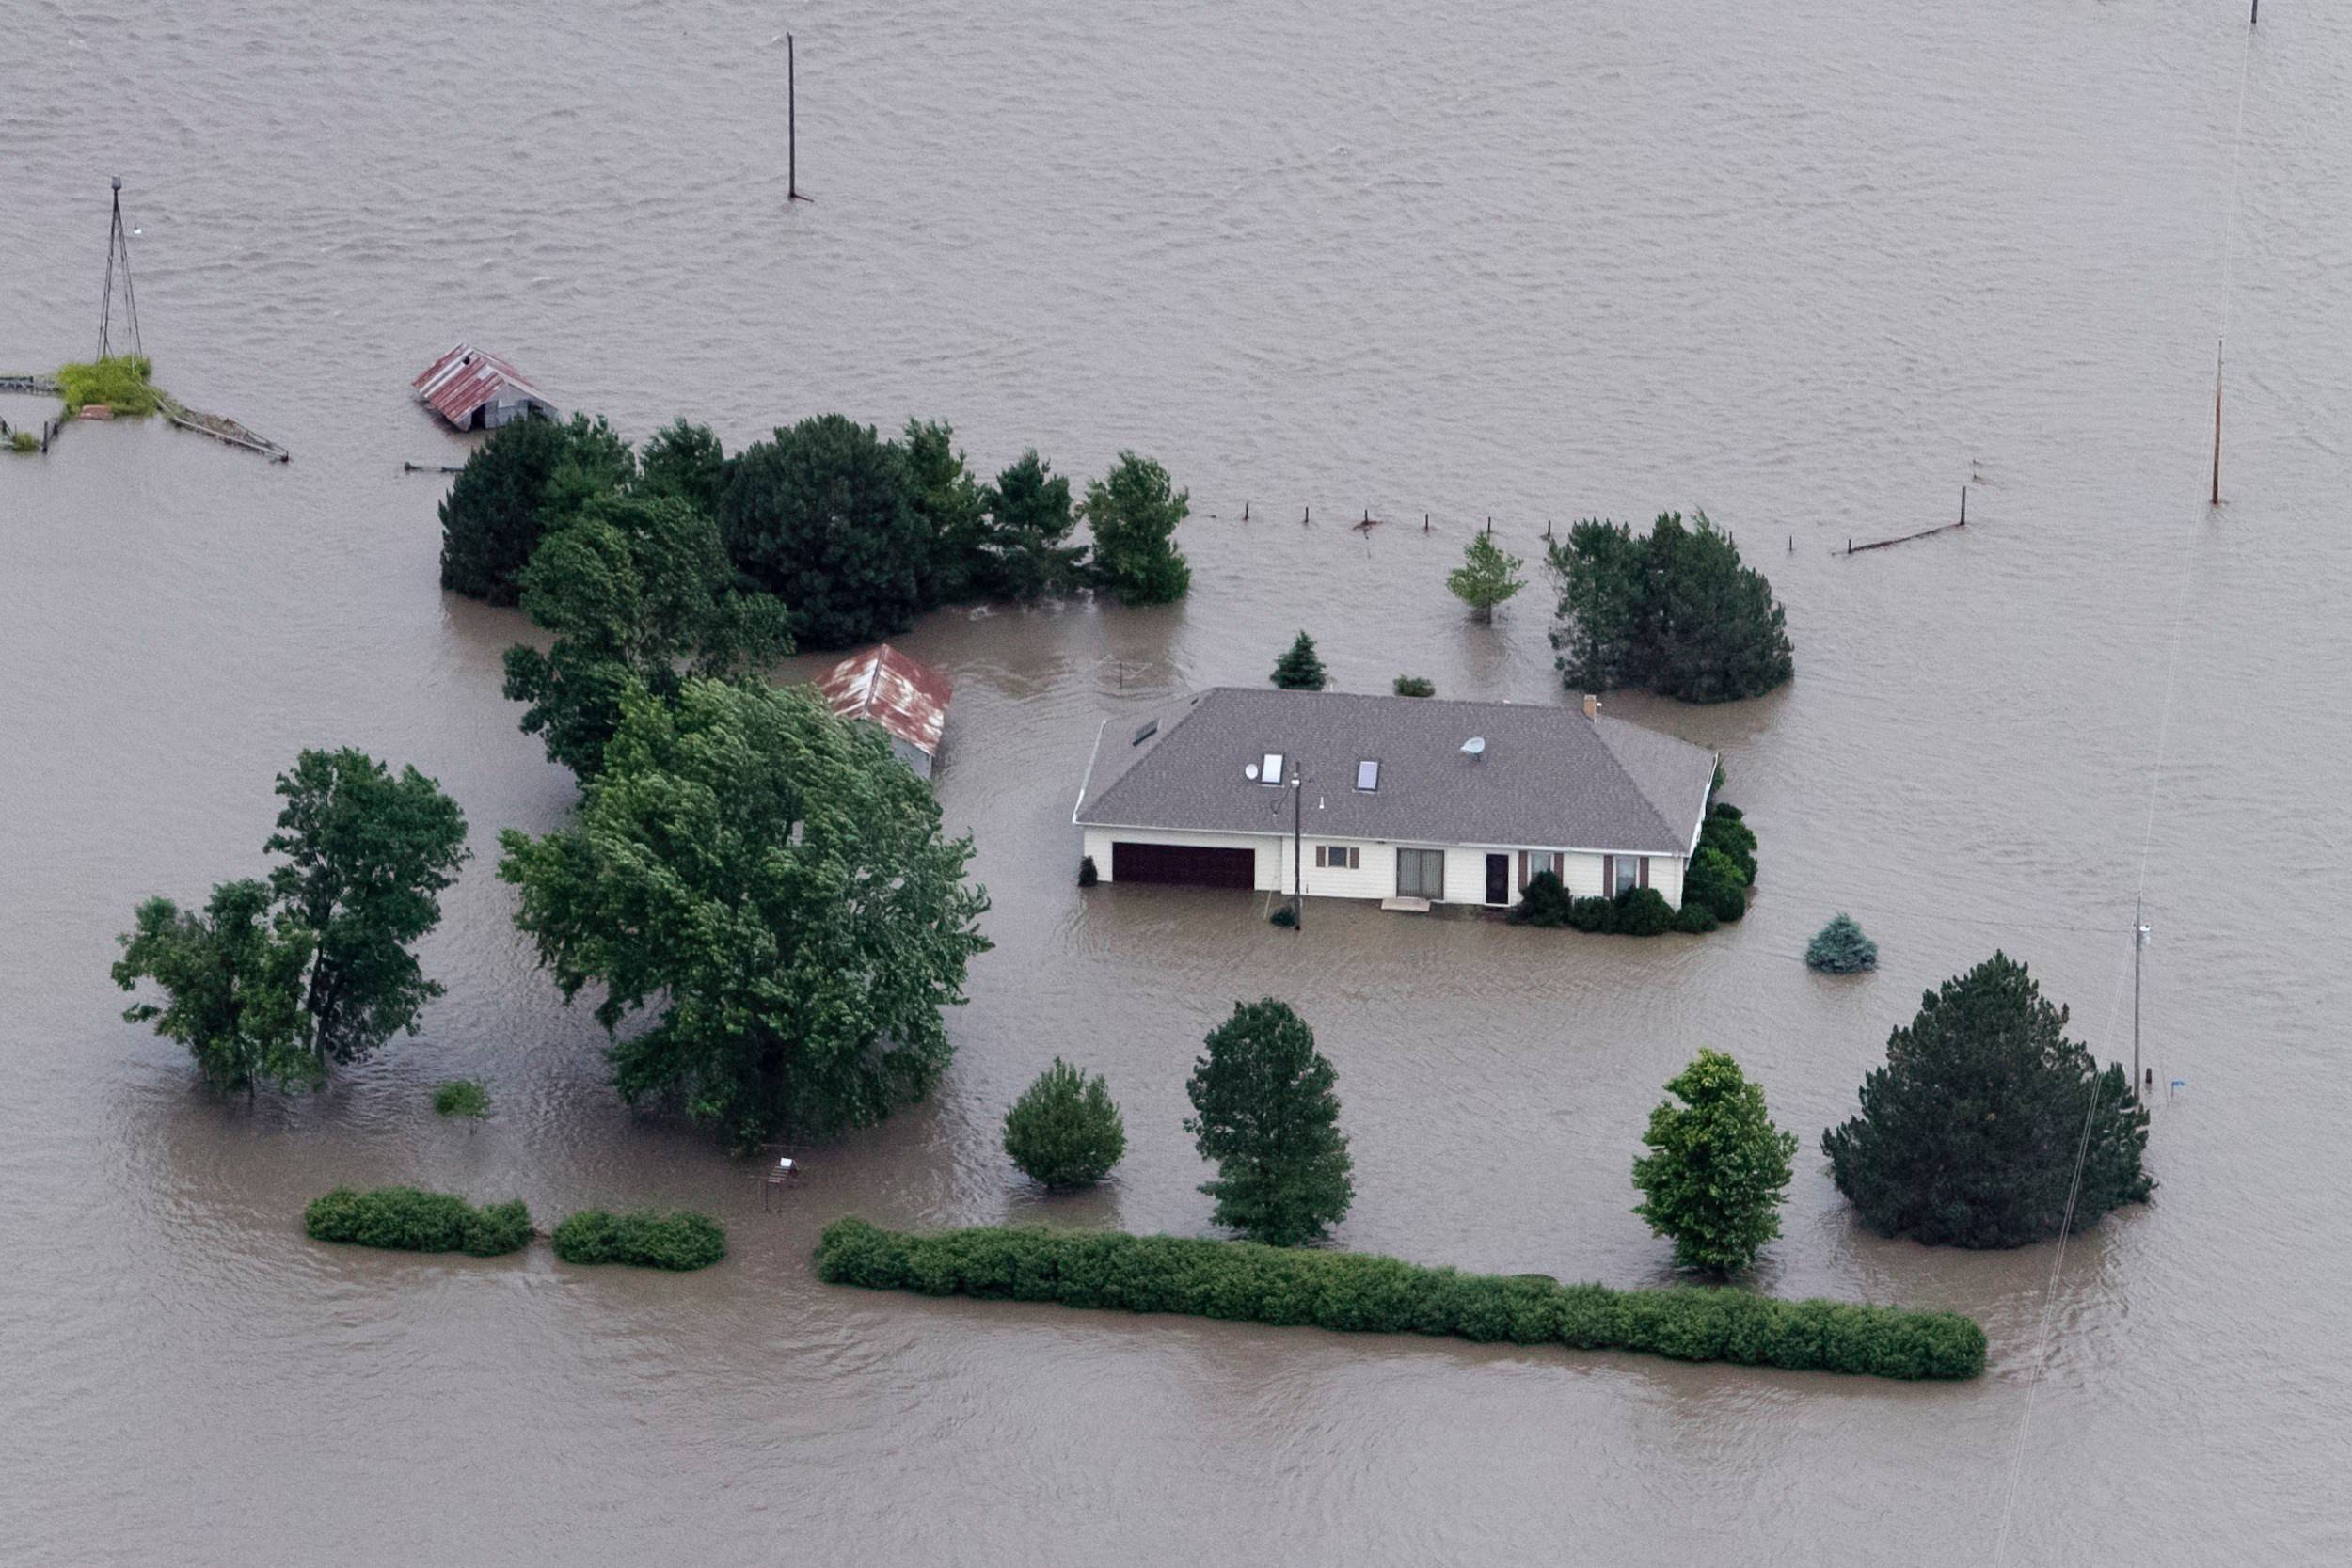 Less than two years after Congress approved a landmark bill to overhaul the federal flood insurance program, lawmakers are poised to undo many of the changes after homeowners in flood-prone areas complained about sharp increases in premiums.